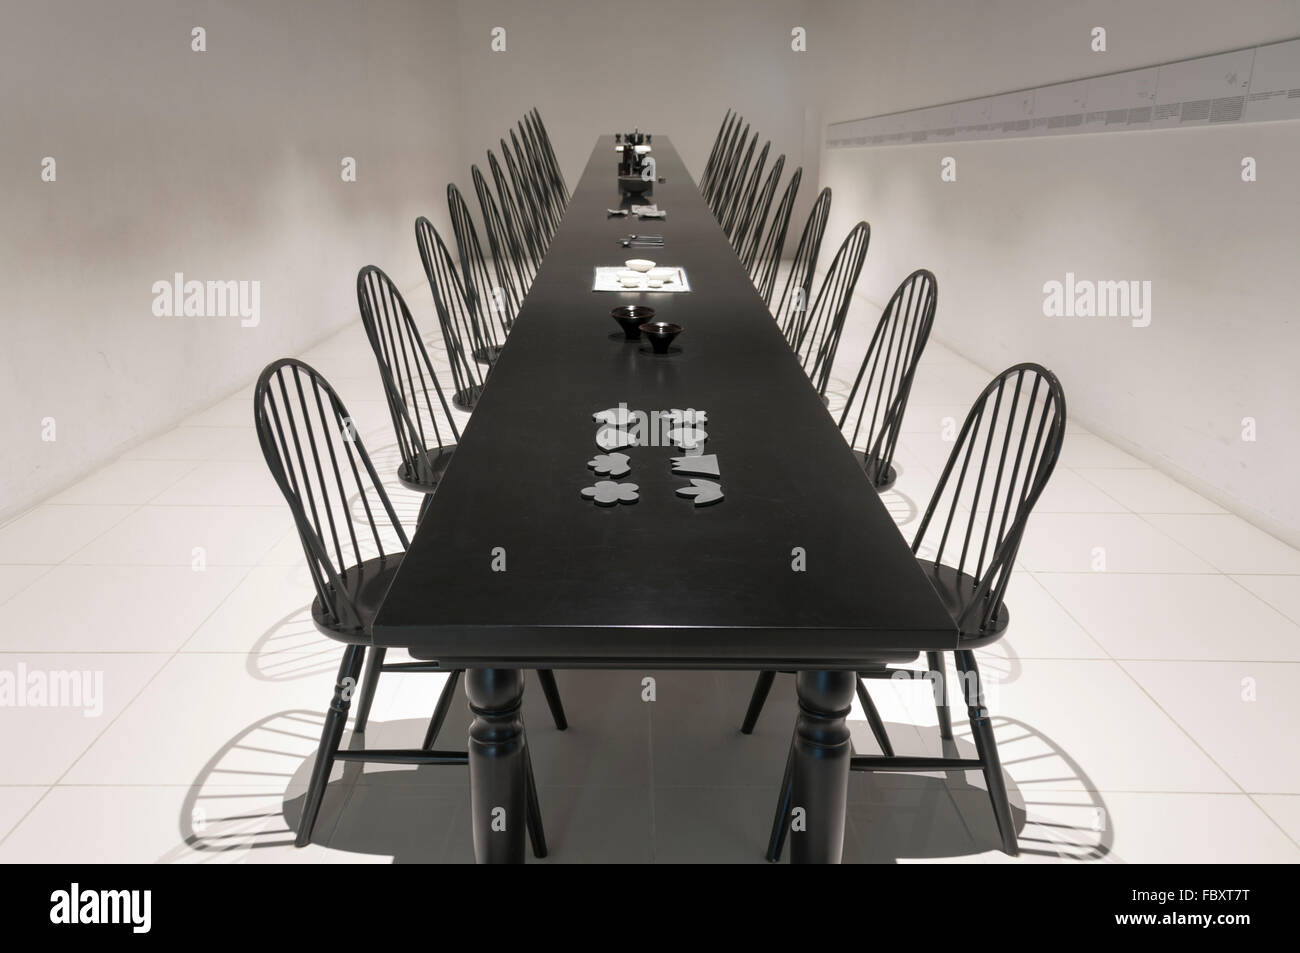 Picture of: Black And White Chair Dining Table High Resolution Stock Photography And Images Alamy